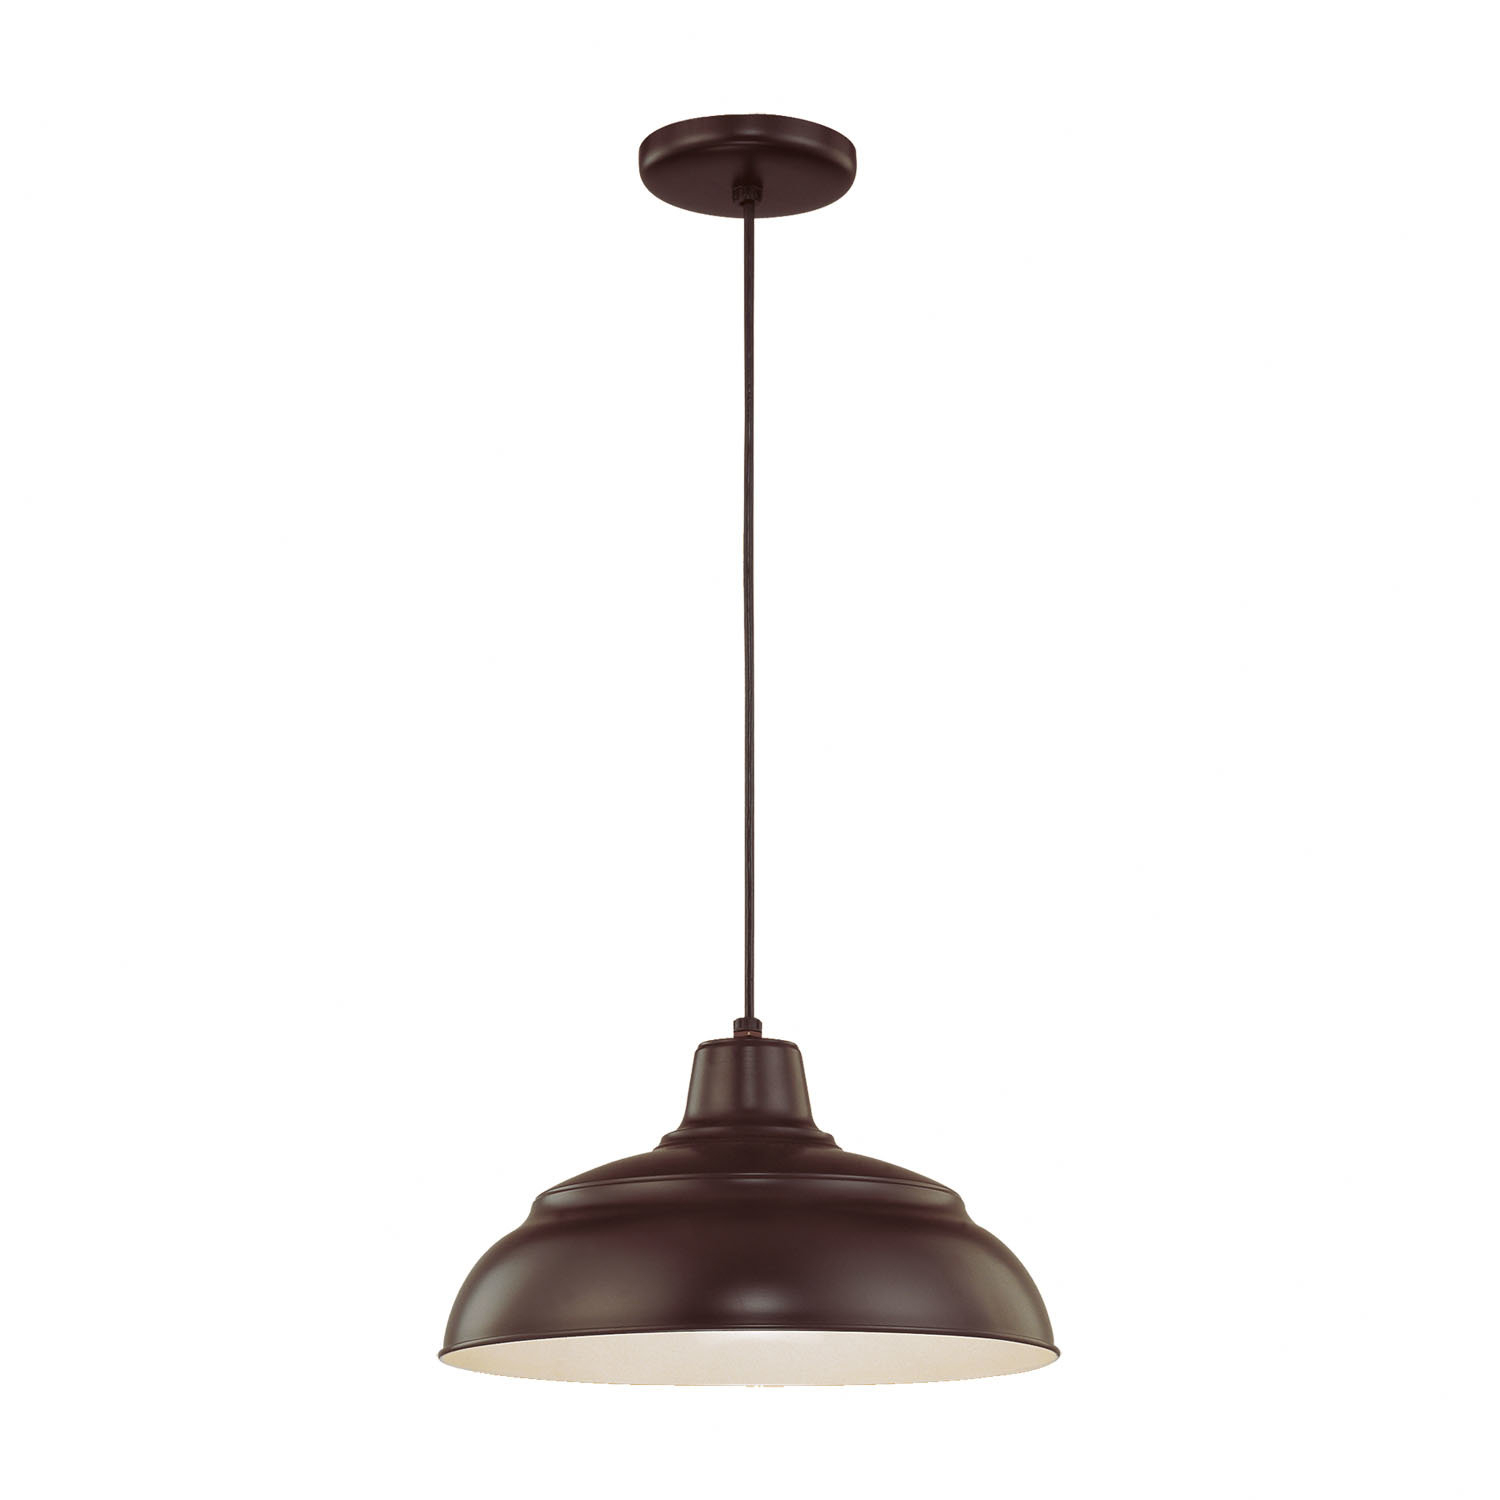 Stetson 1-Light Bowl Pendant with Conover 1-Light Dome Pendants (Image 28 of 30)